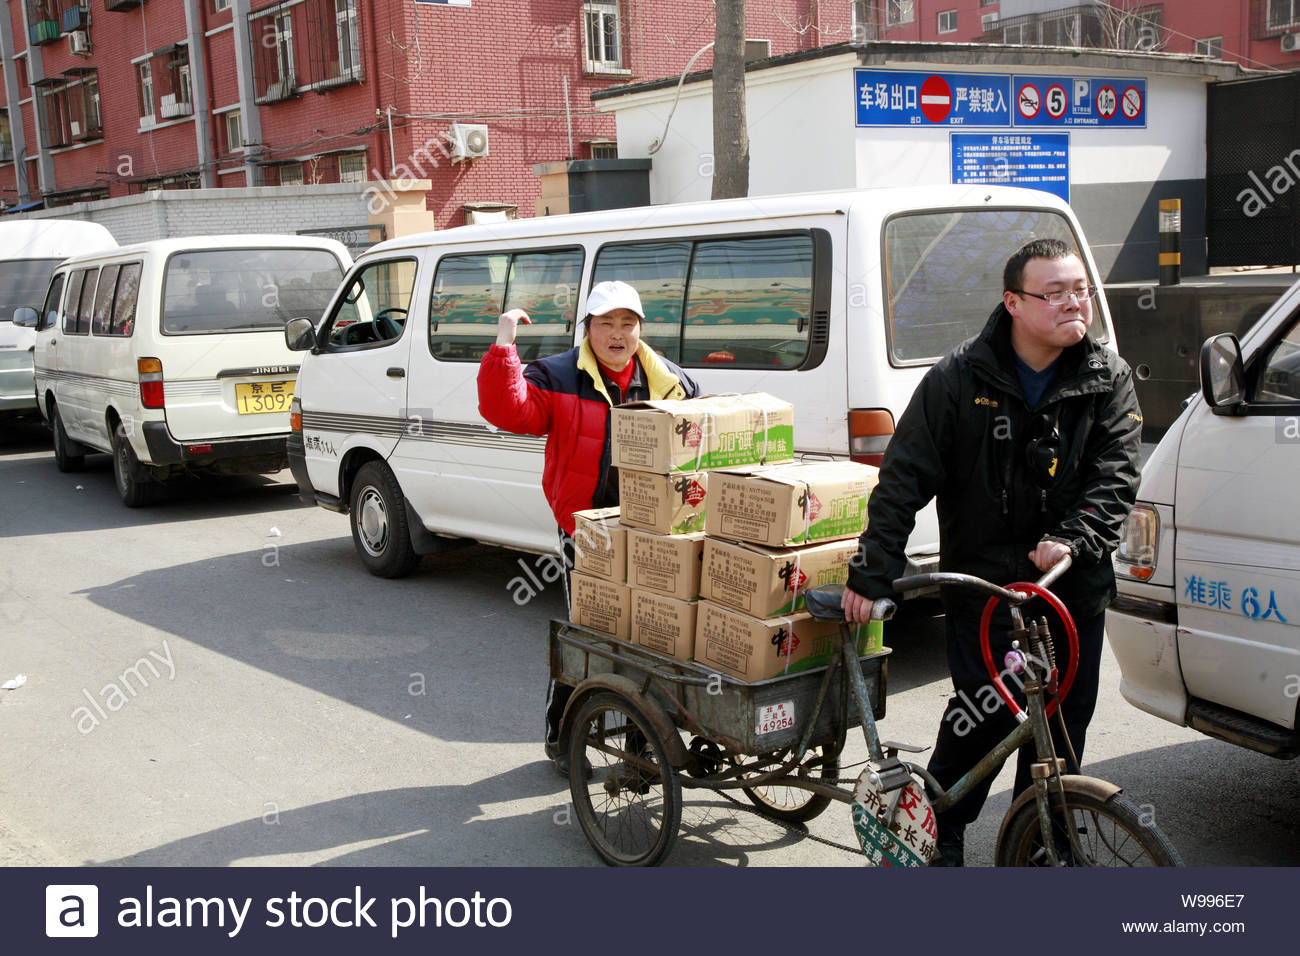 Tricycle Beijing China Stock Photos & Tricycle Beijing China